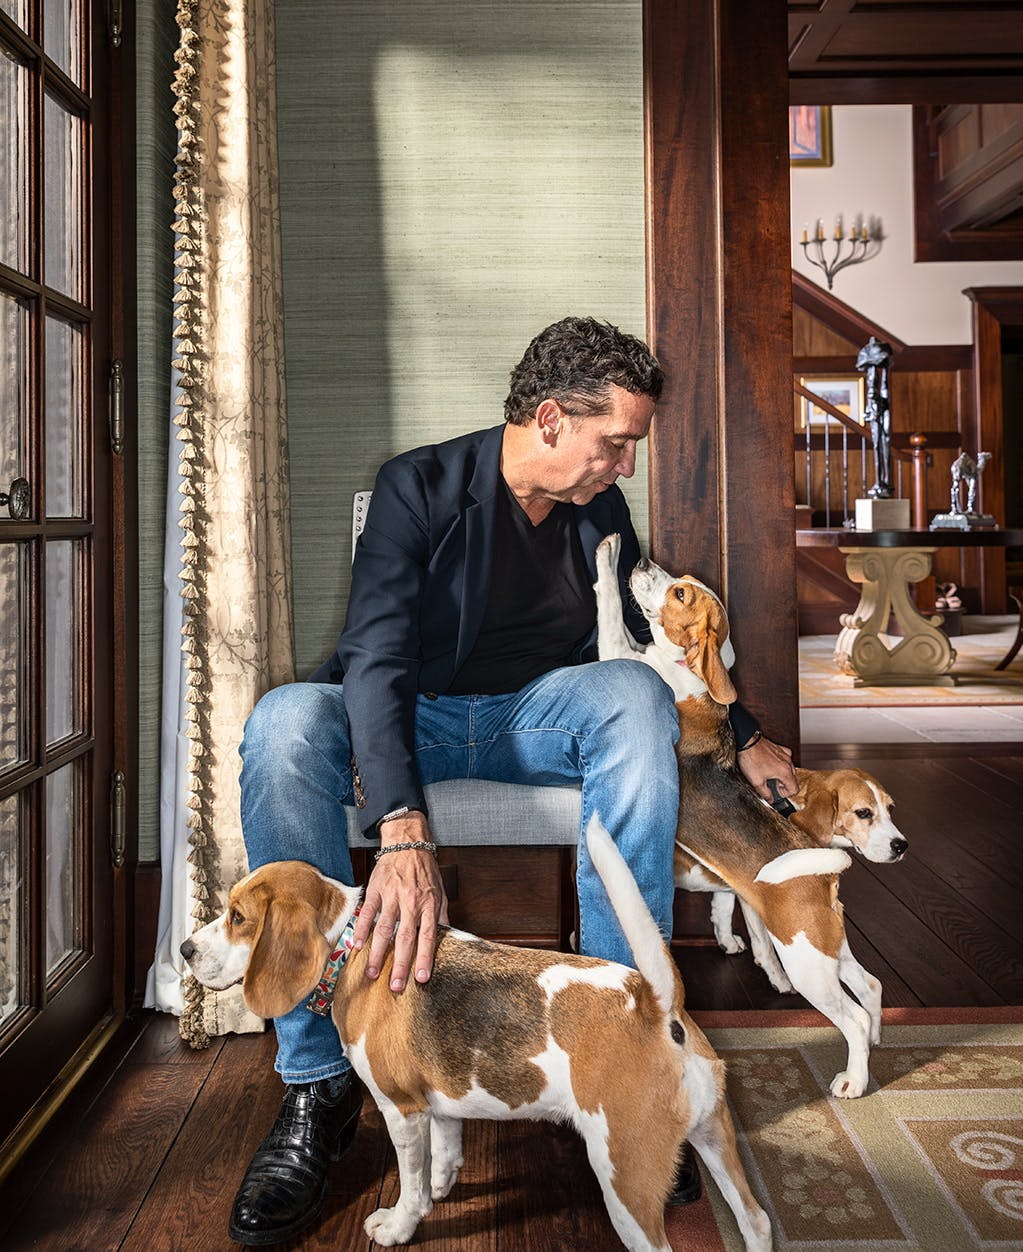 Buzbee at home with his dogs